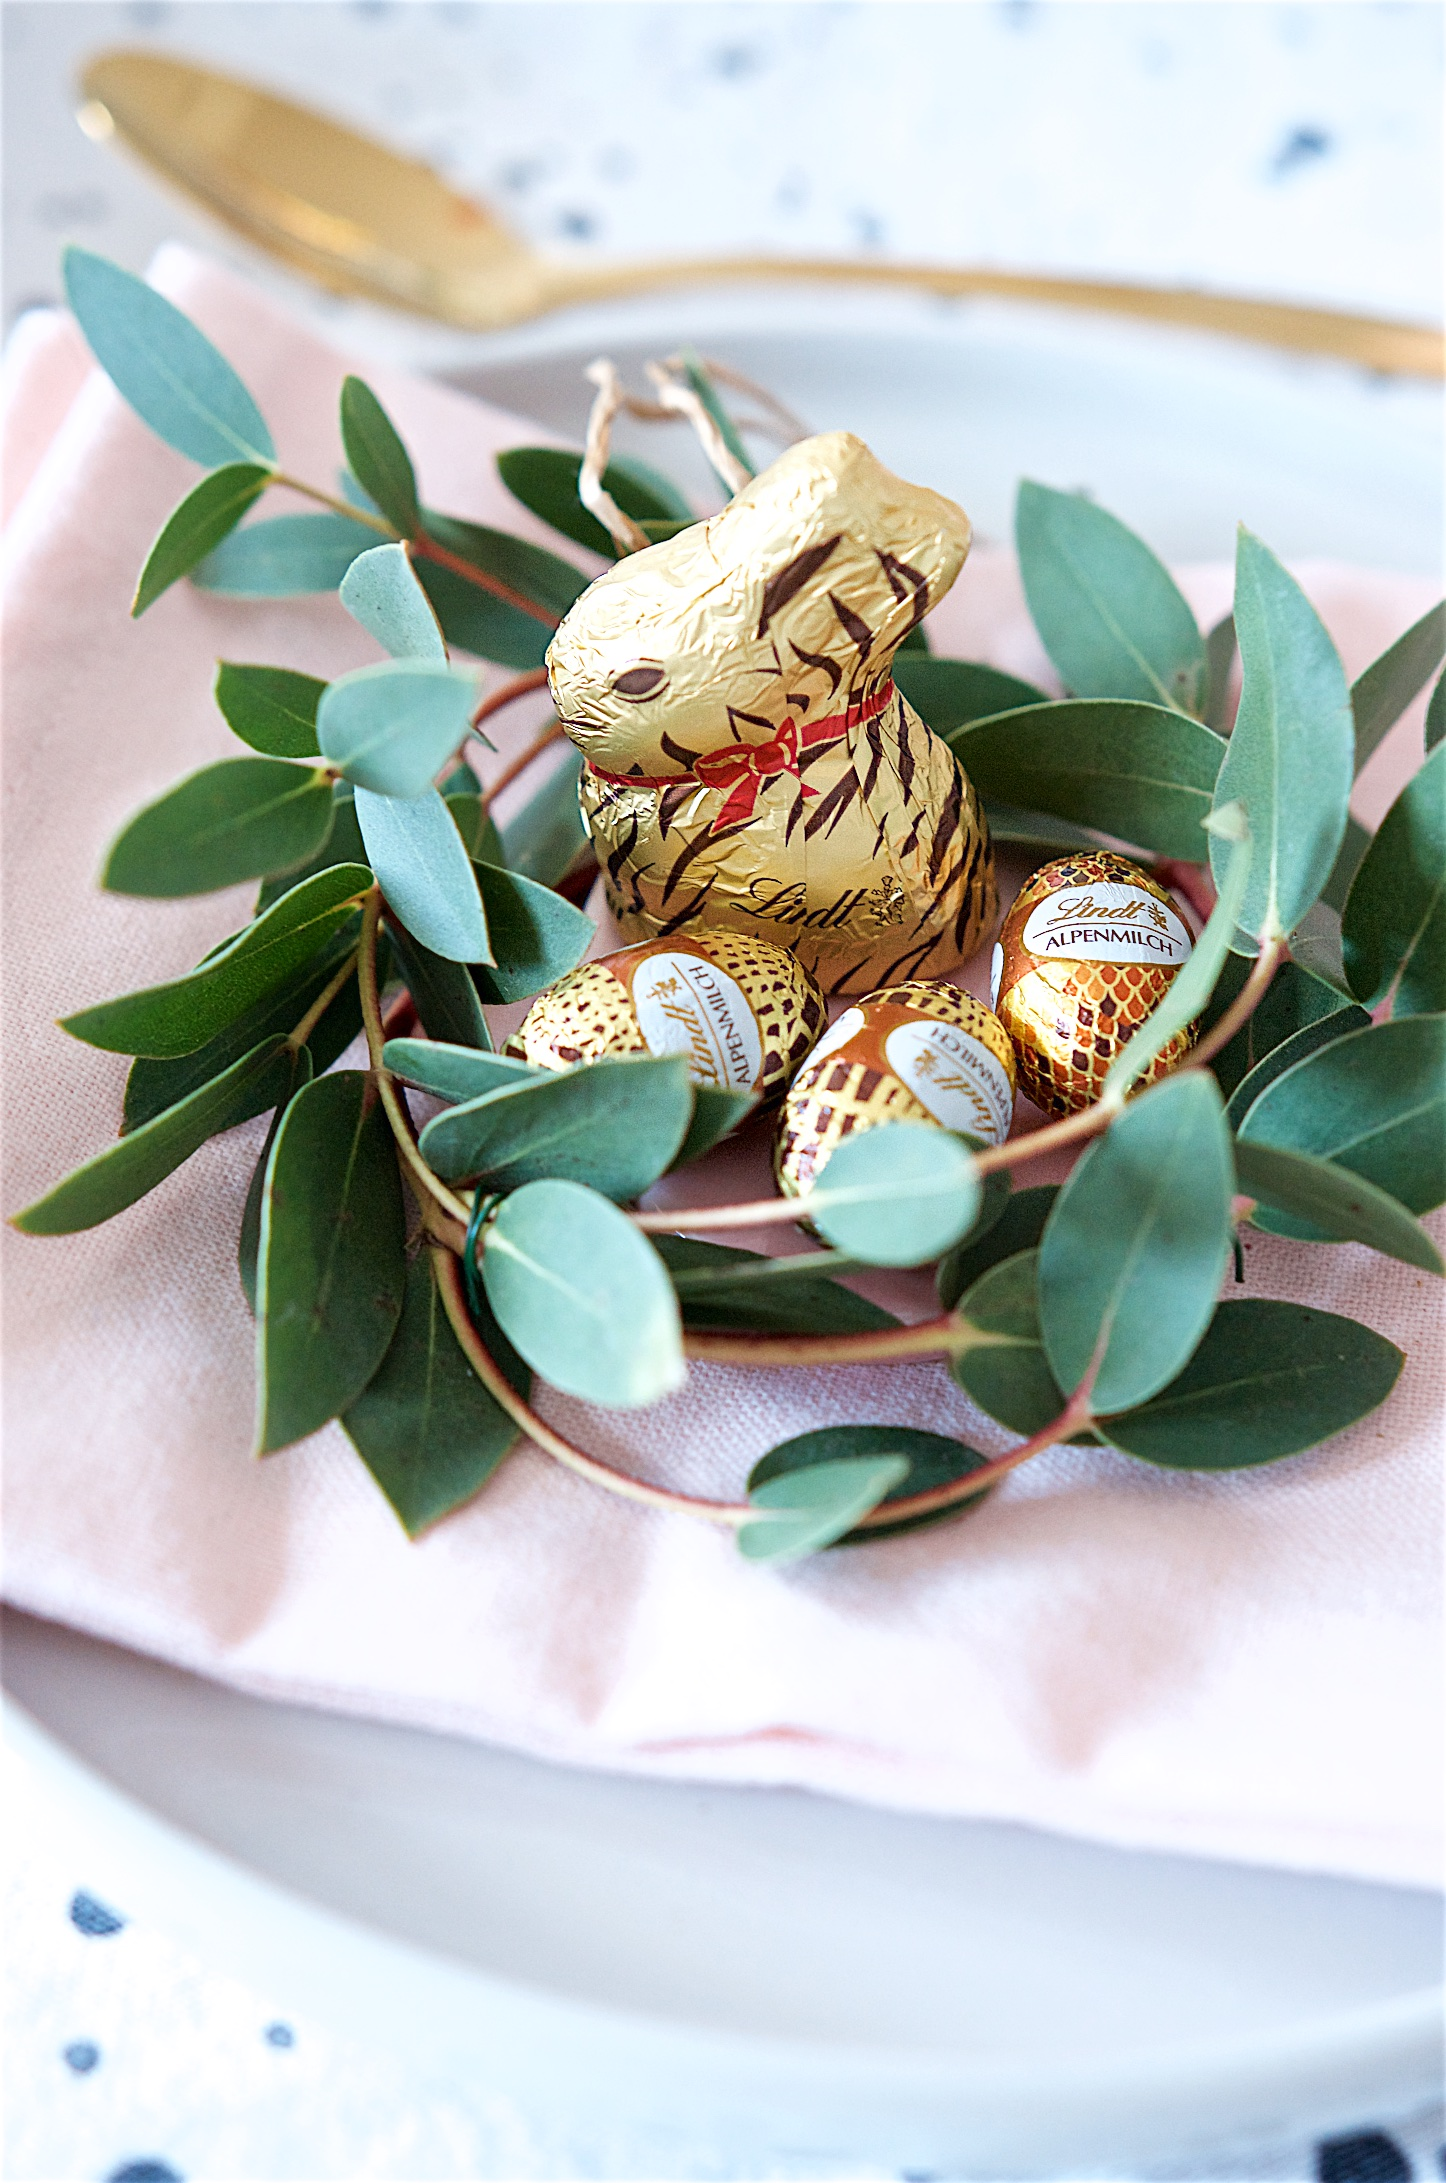 Deko Ideen Osterbrunch mit Goldhase im Animal Print von Lindt